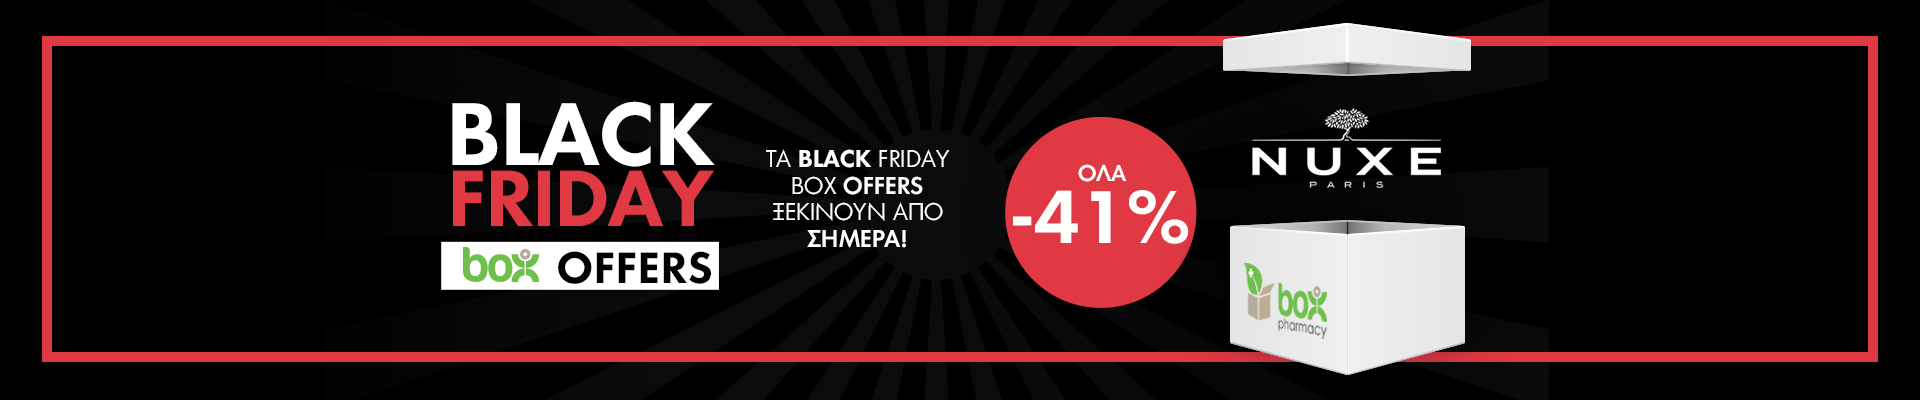 BLACK FRIDAY NUXE -41% 17/11/17